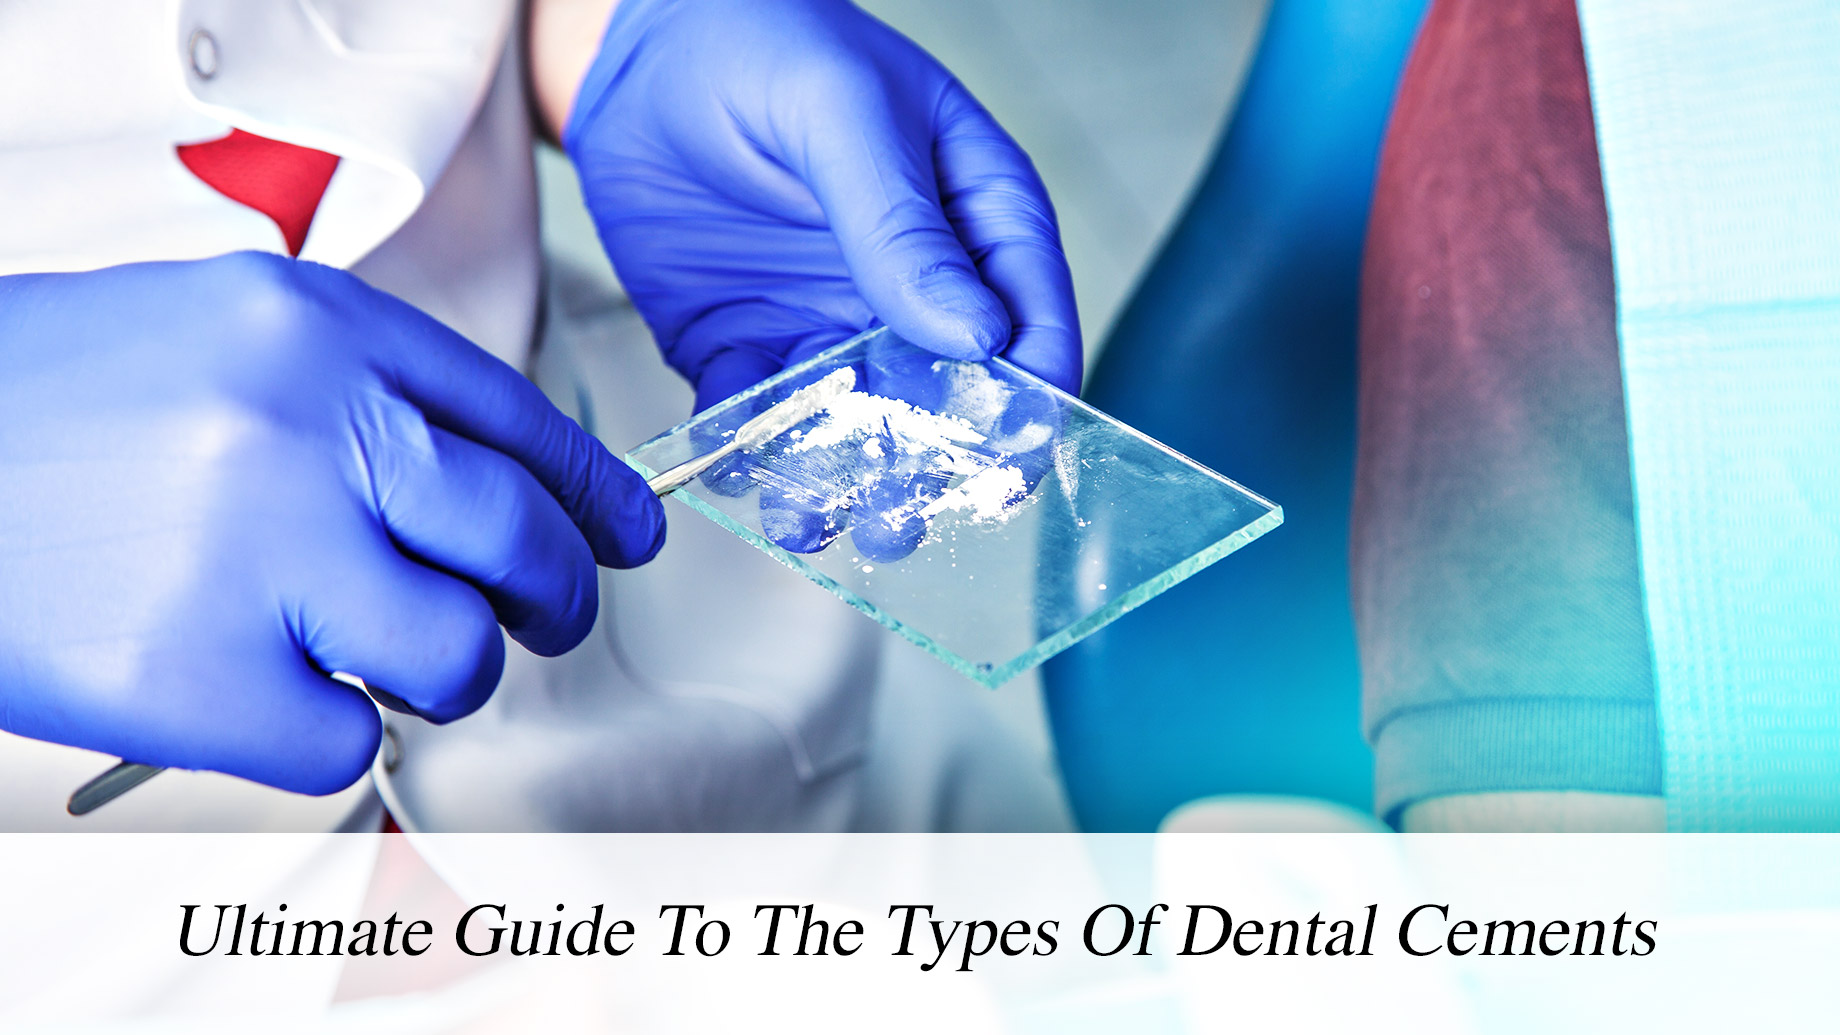 Ultimate Guide To The Types Of Dental Cements